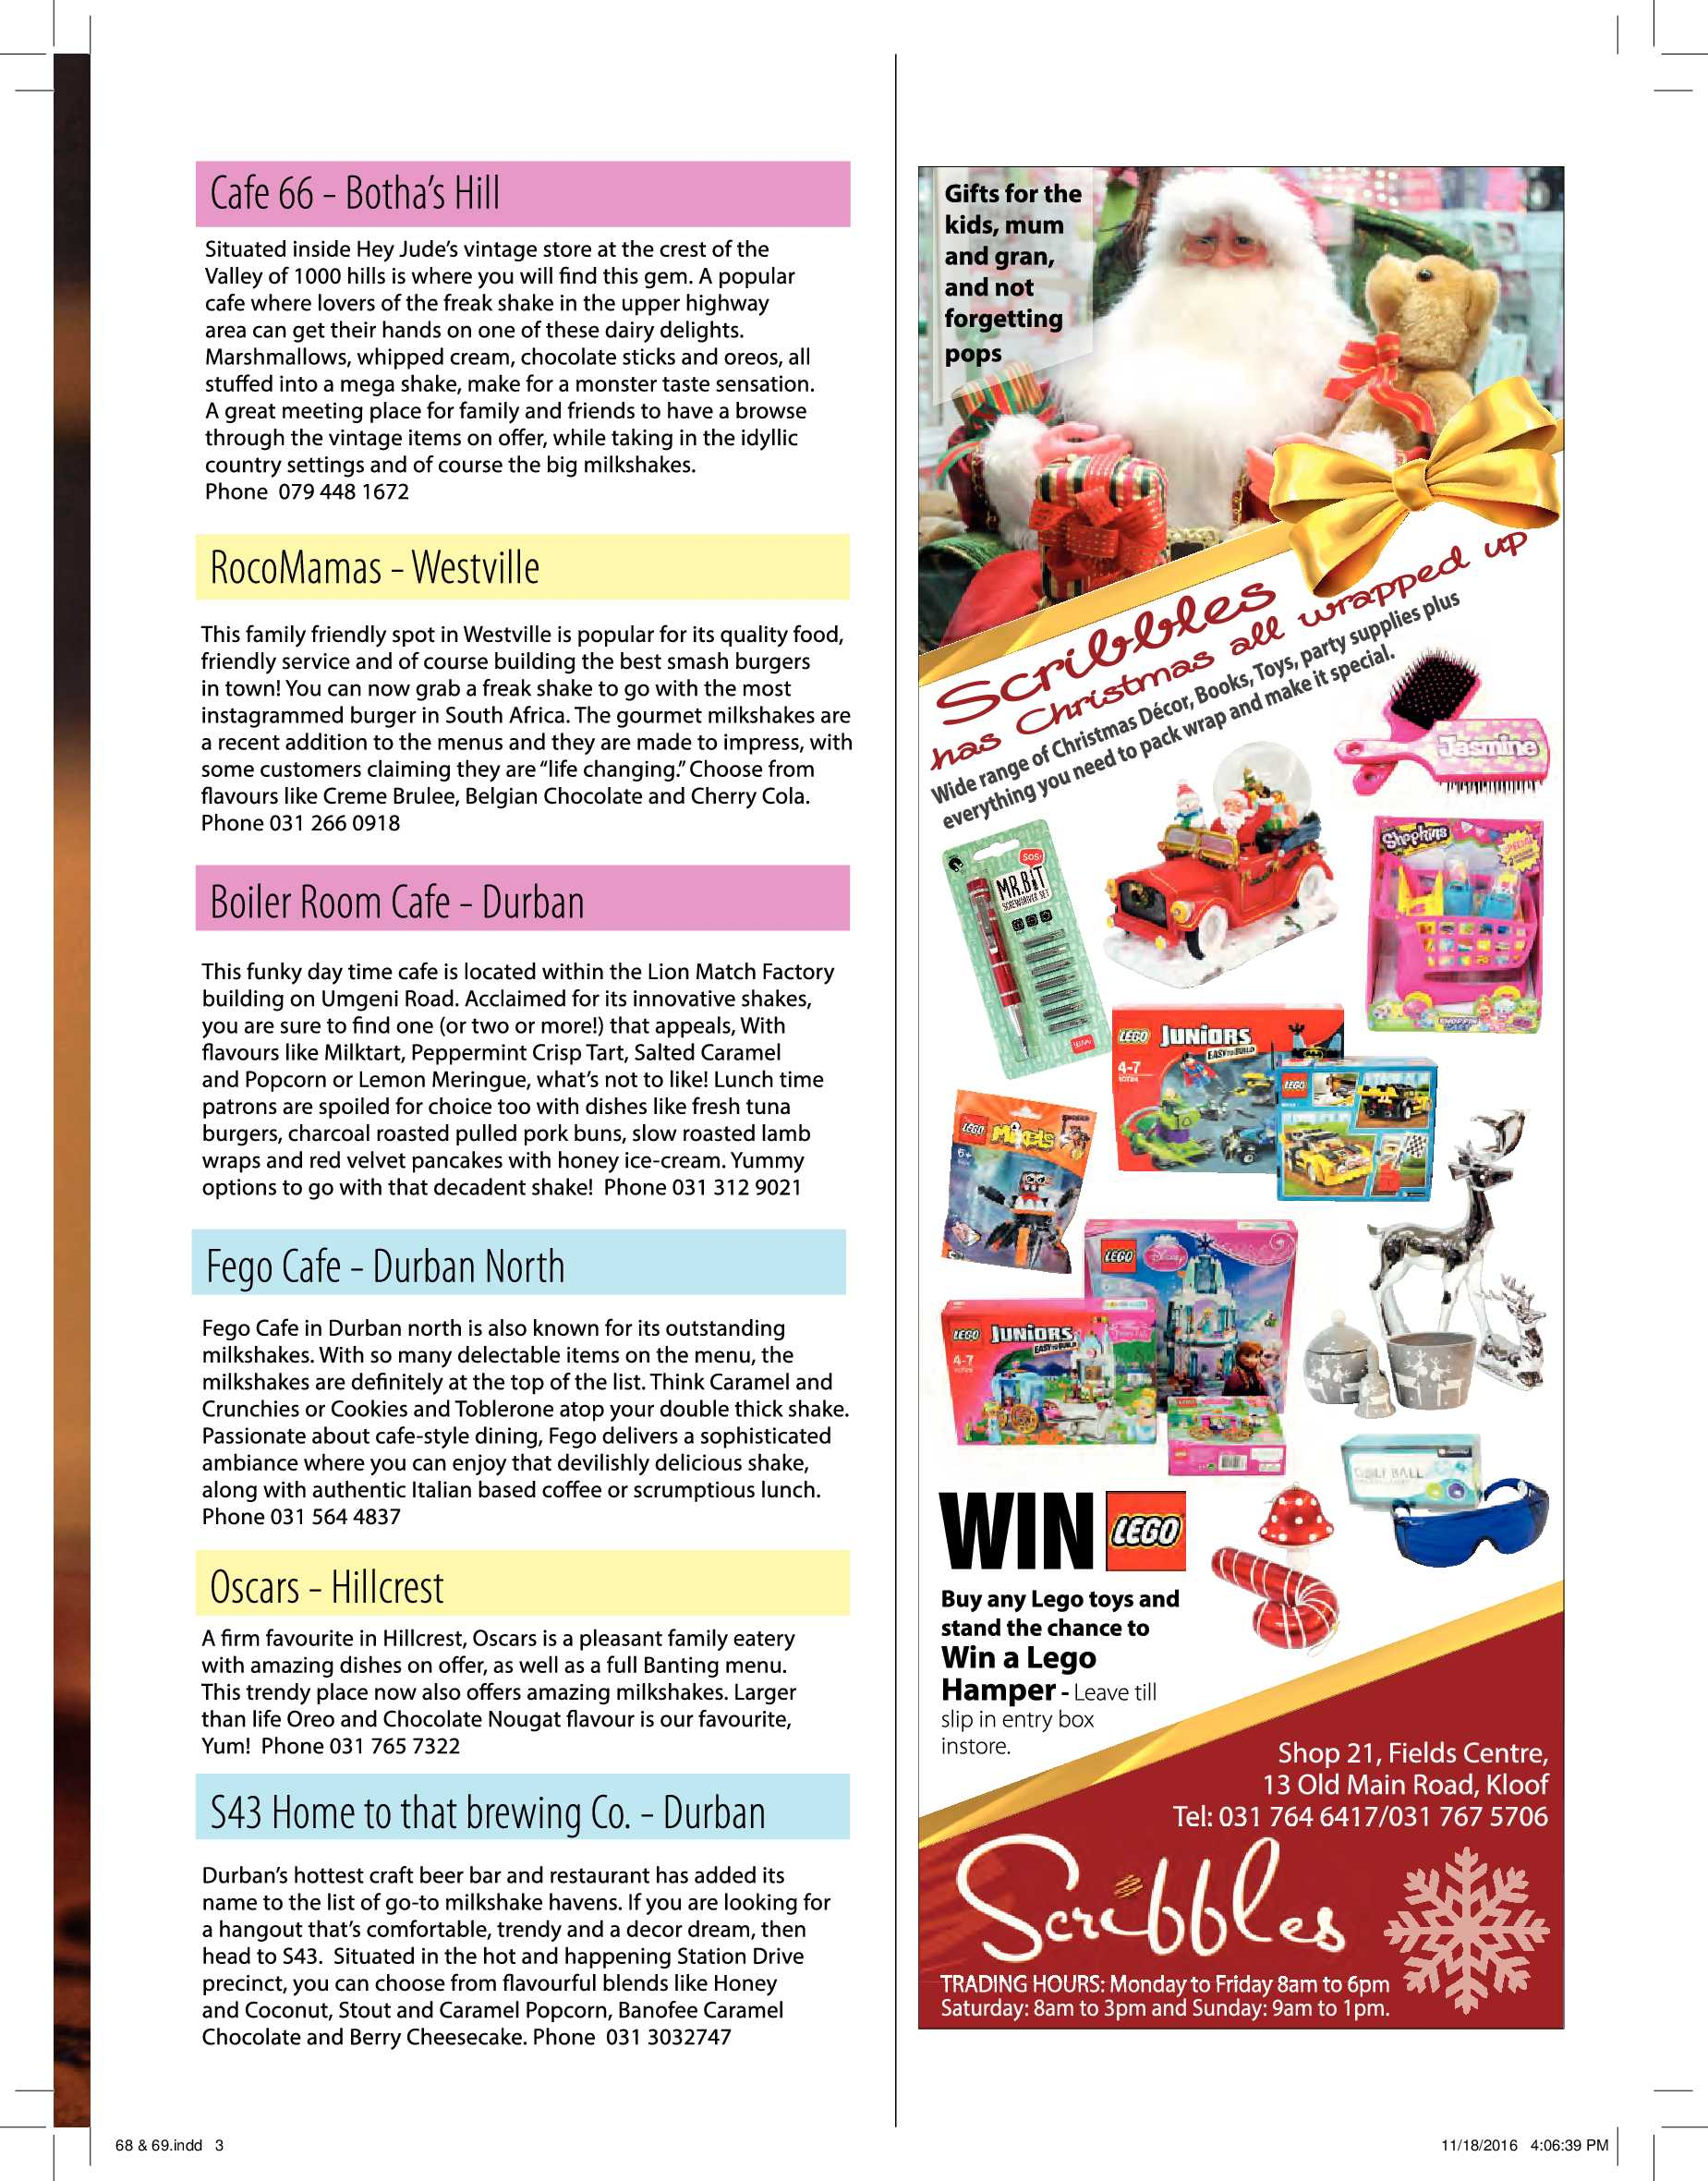 durban-get-it-magazine-december-2016-epapers-page-71